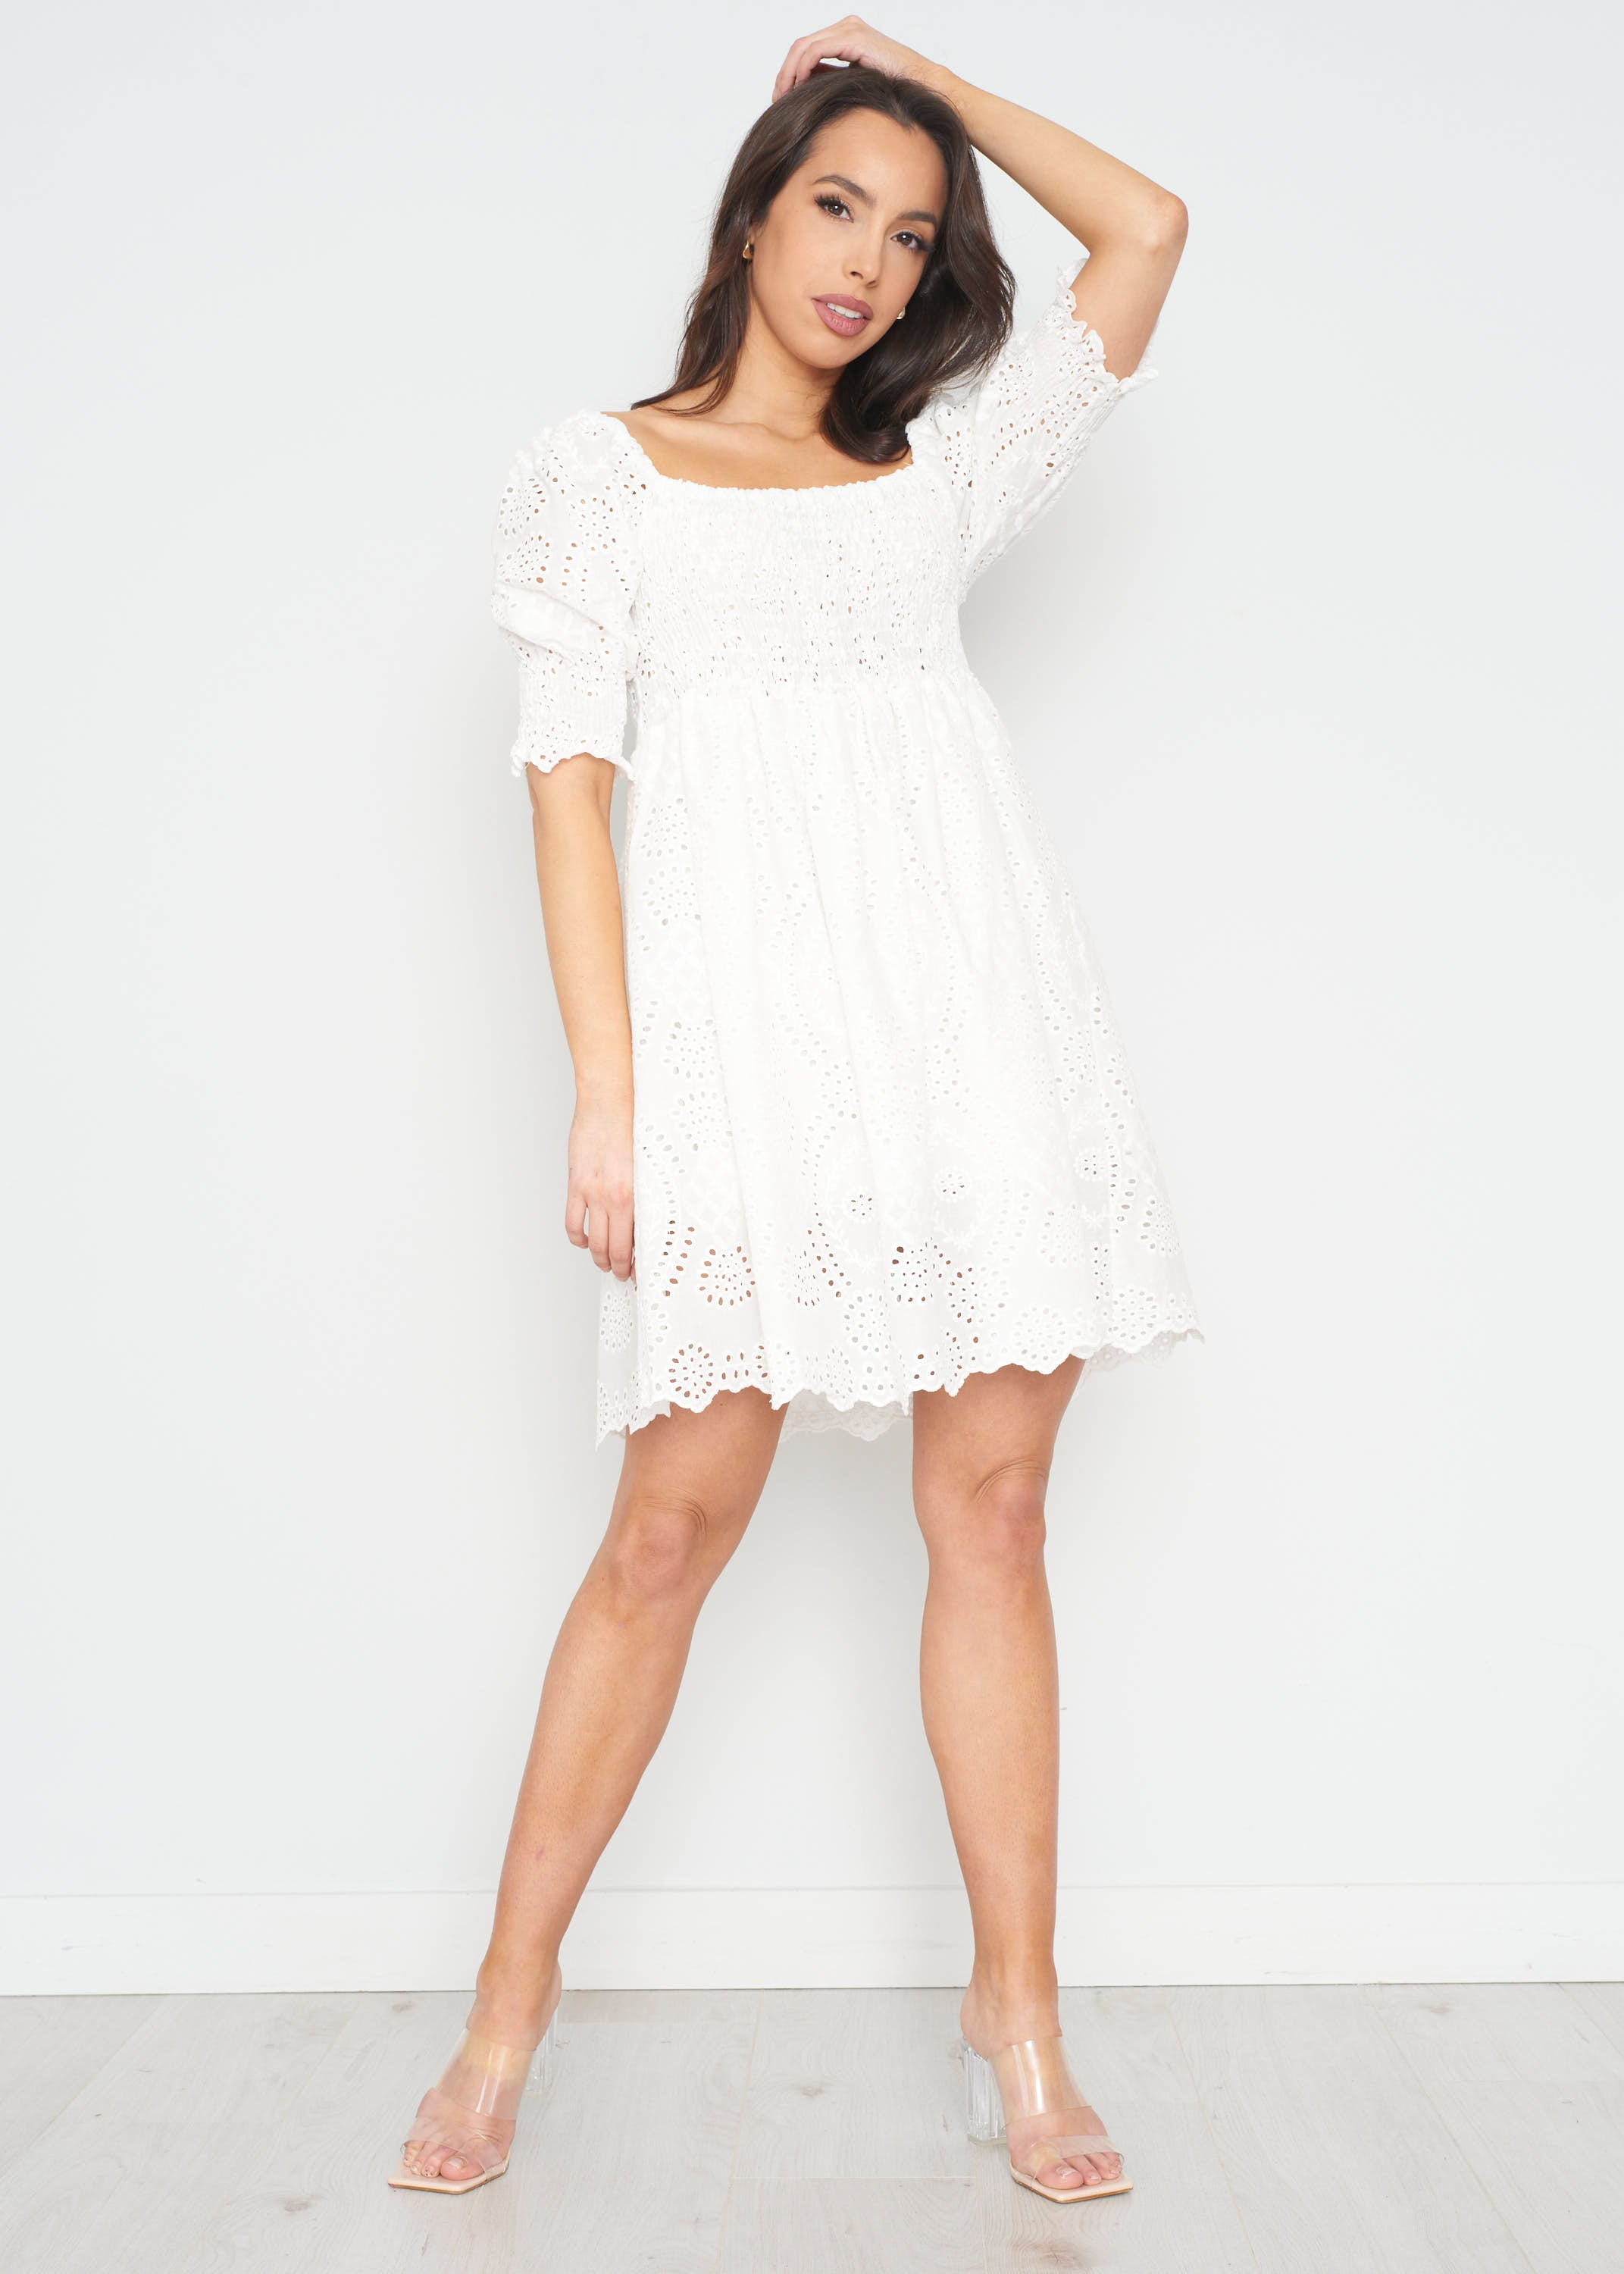 Indie Lace Mini Dress In White